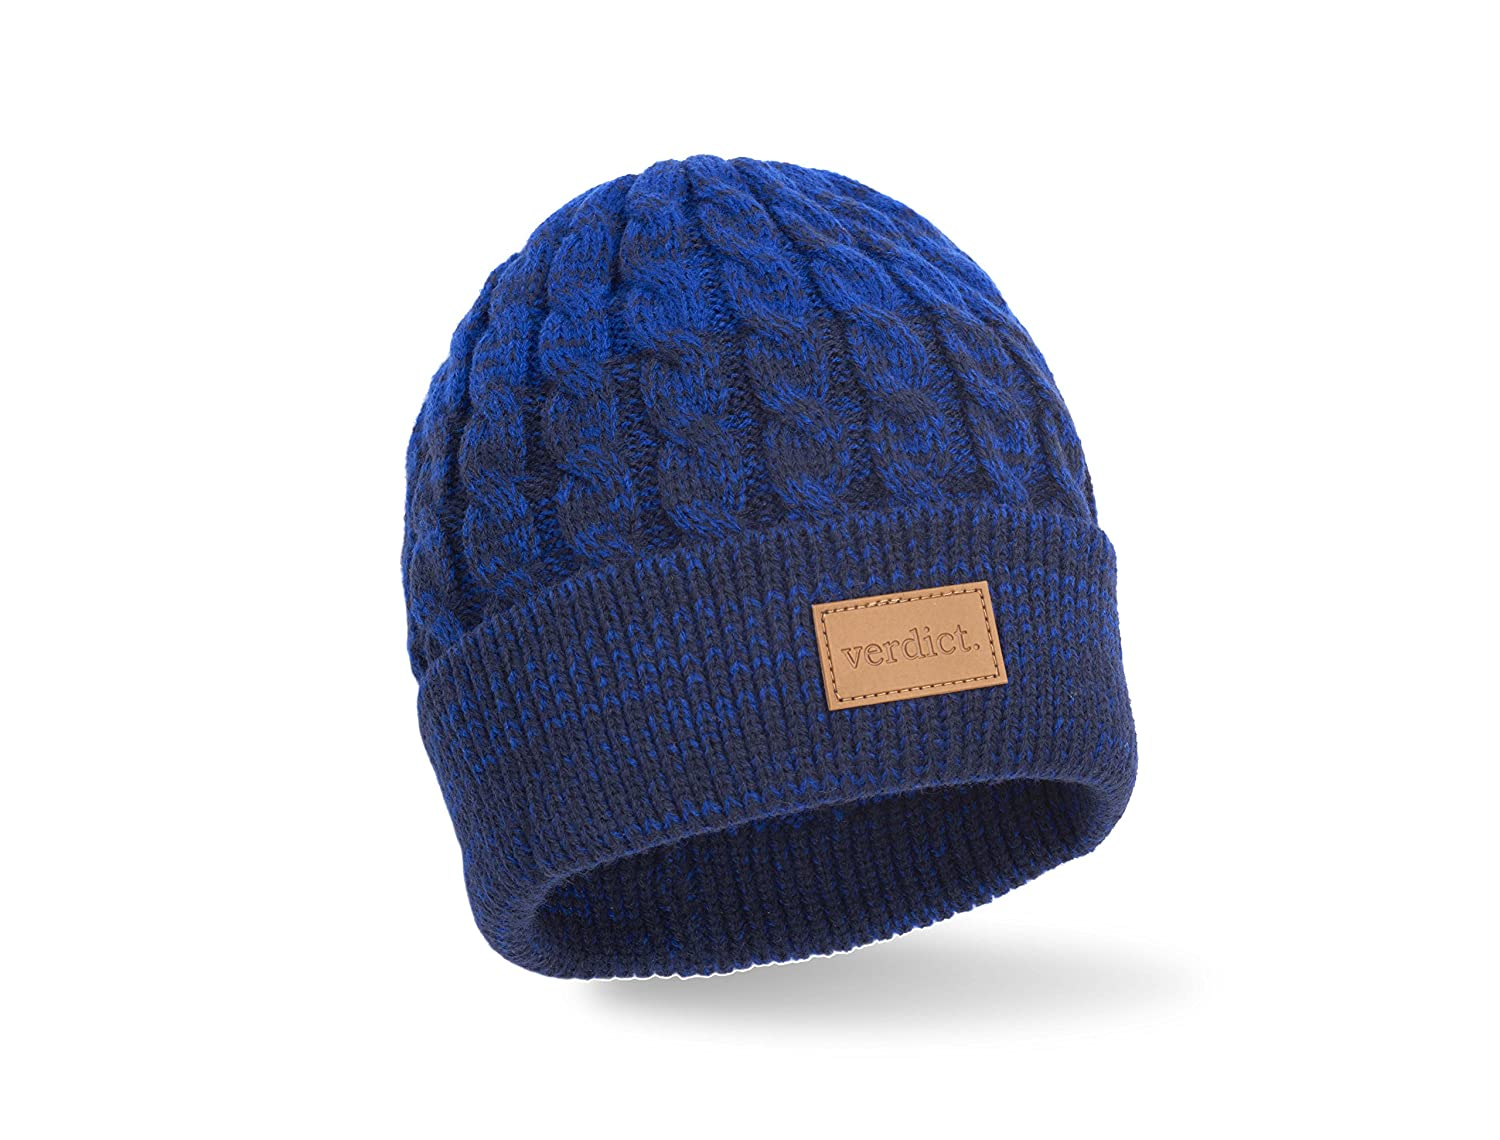 info for 4c6a1 98f6f ... france hat soul beanie clothing a34c4 78dd1